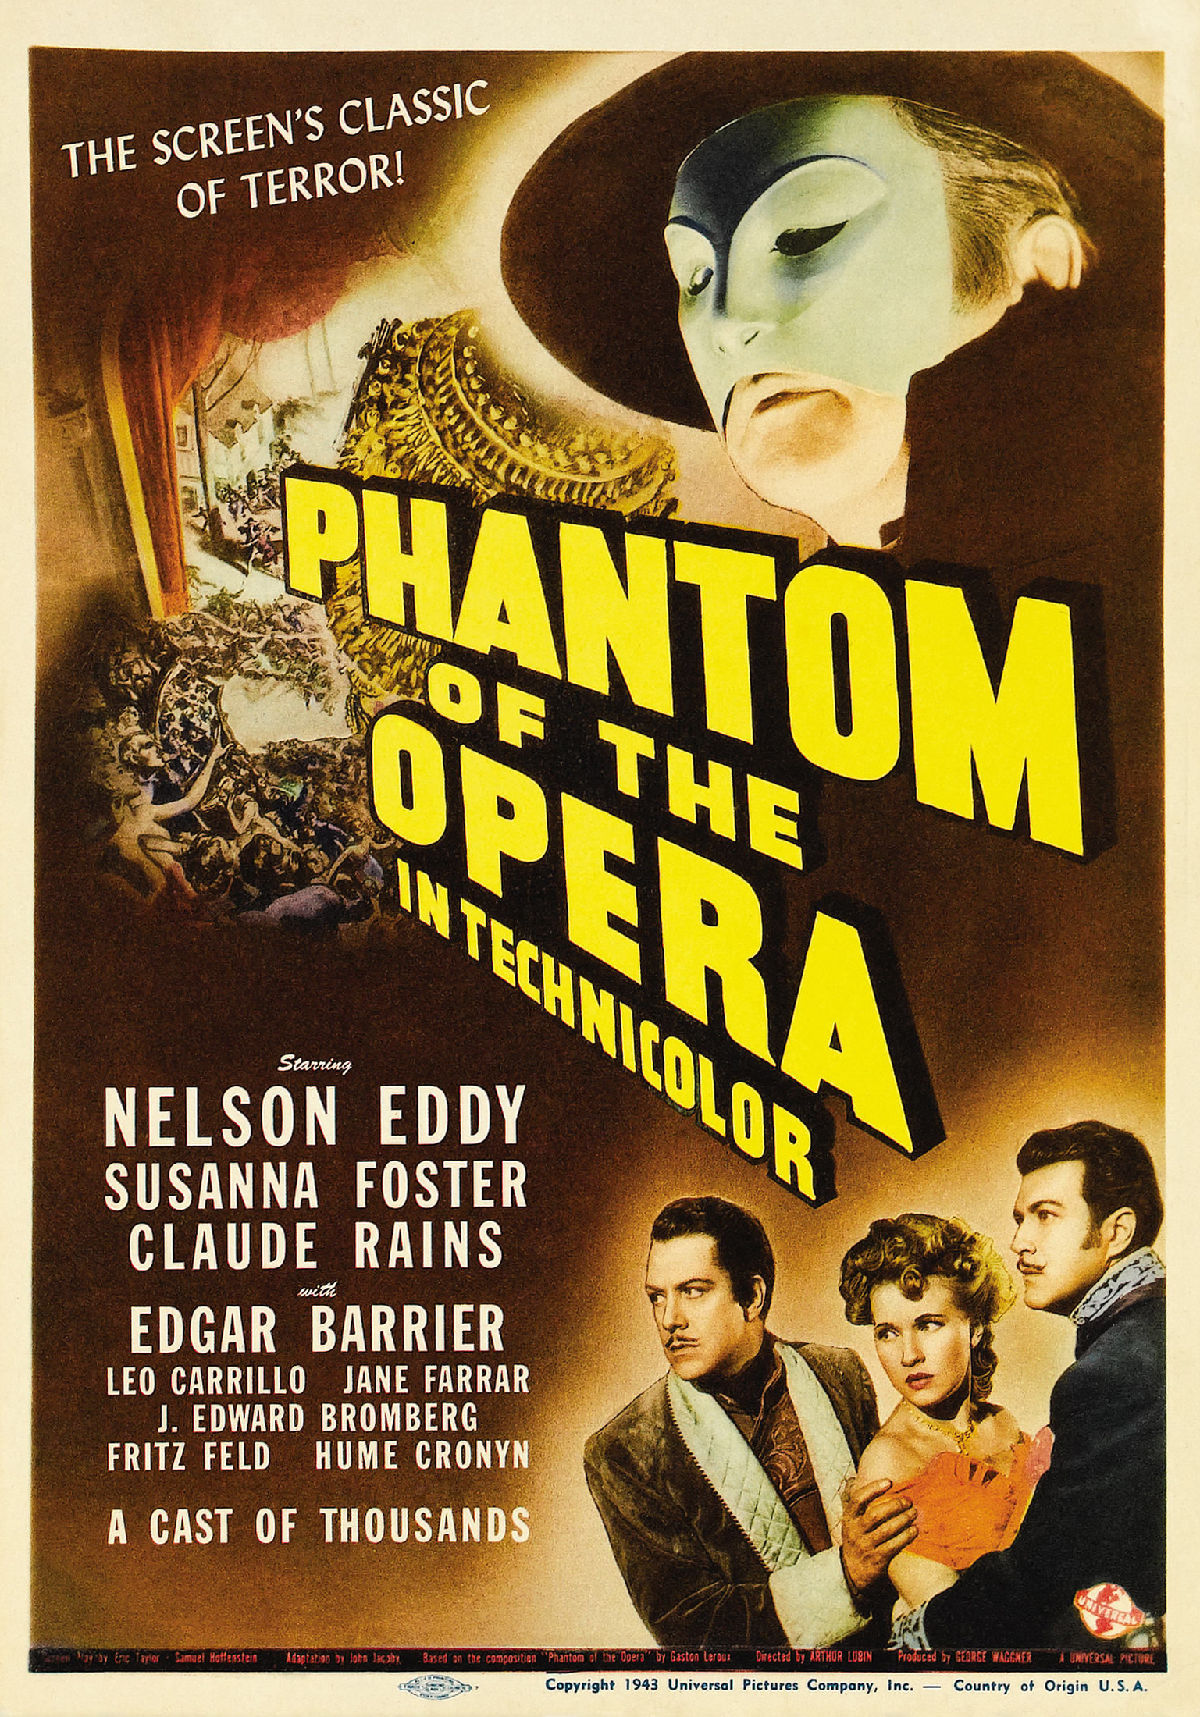 'Phantom Of The Opera' movie poster